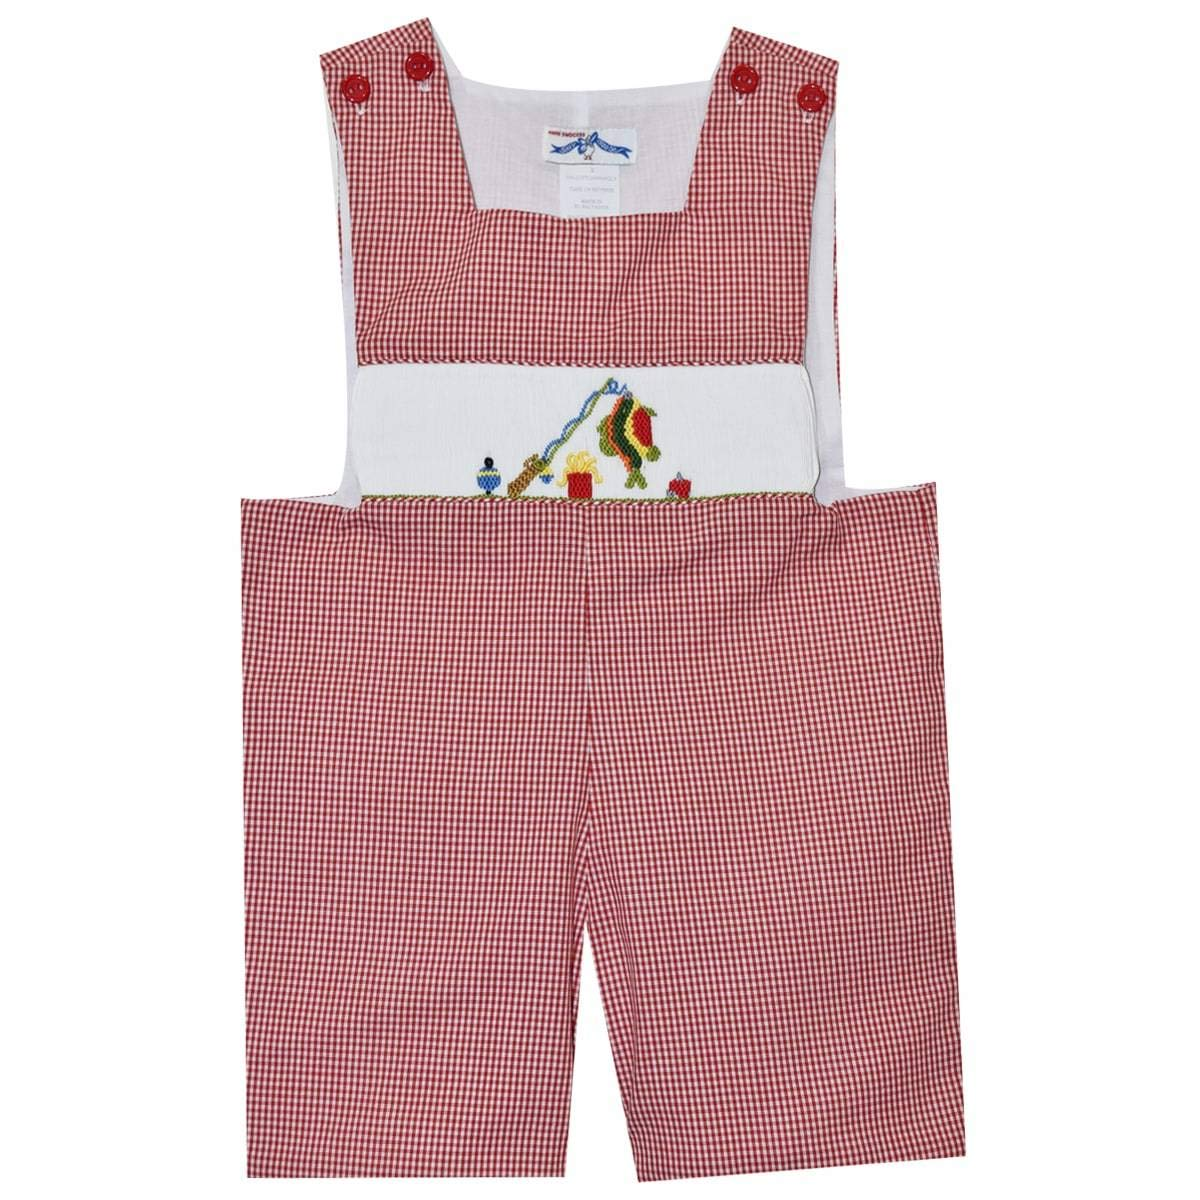 Fishing Smocked Red Gingham Check Boys Sunsuit